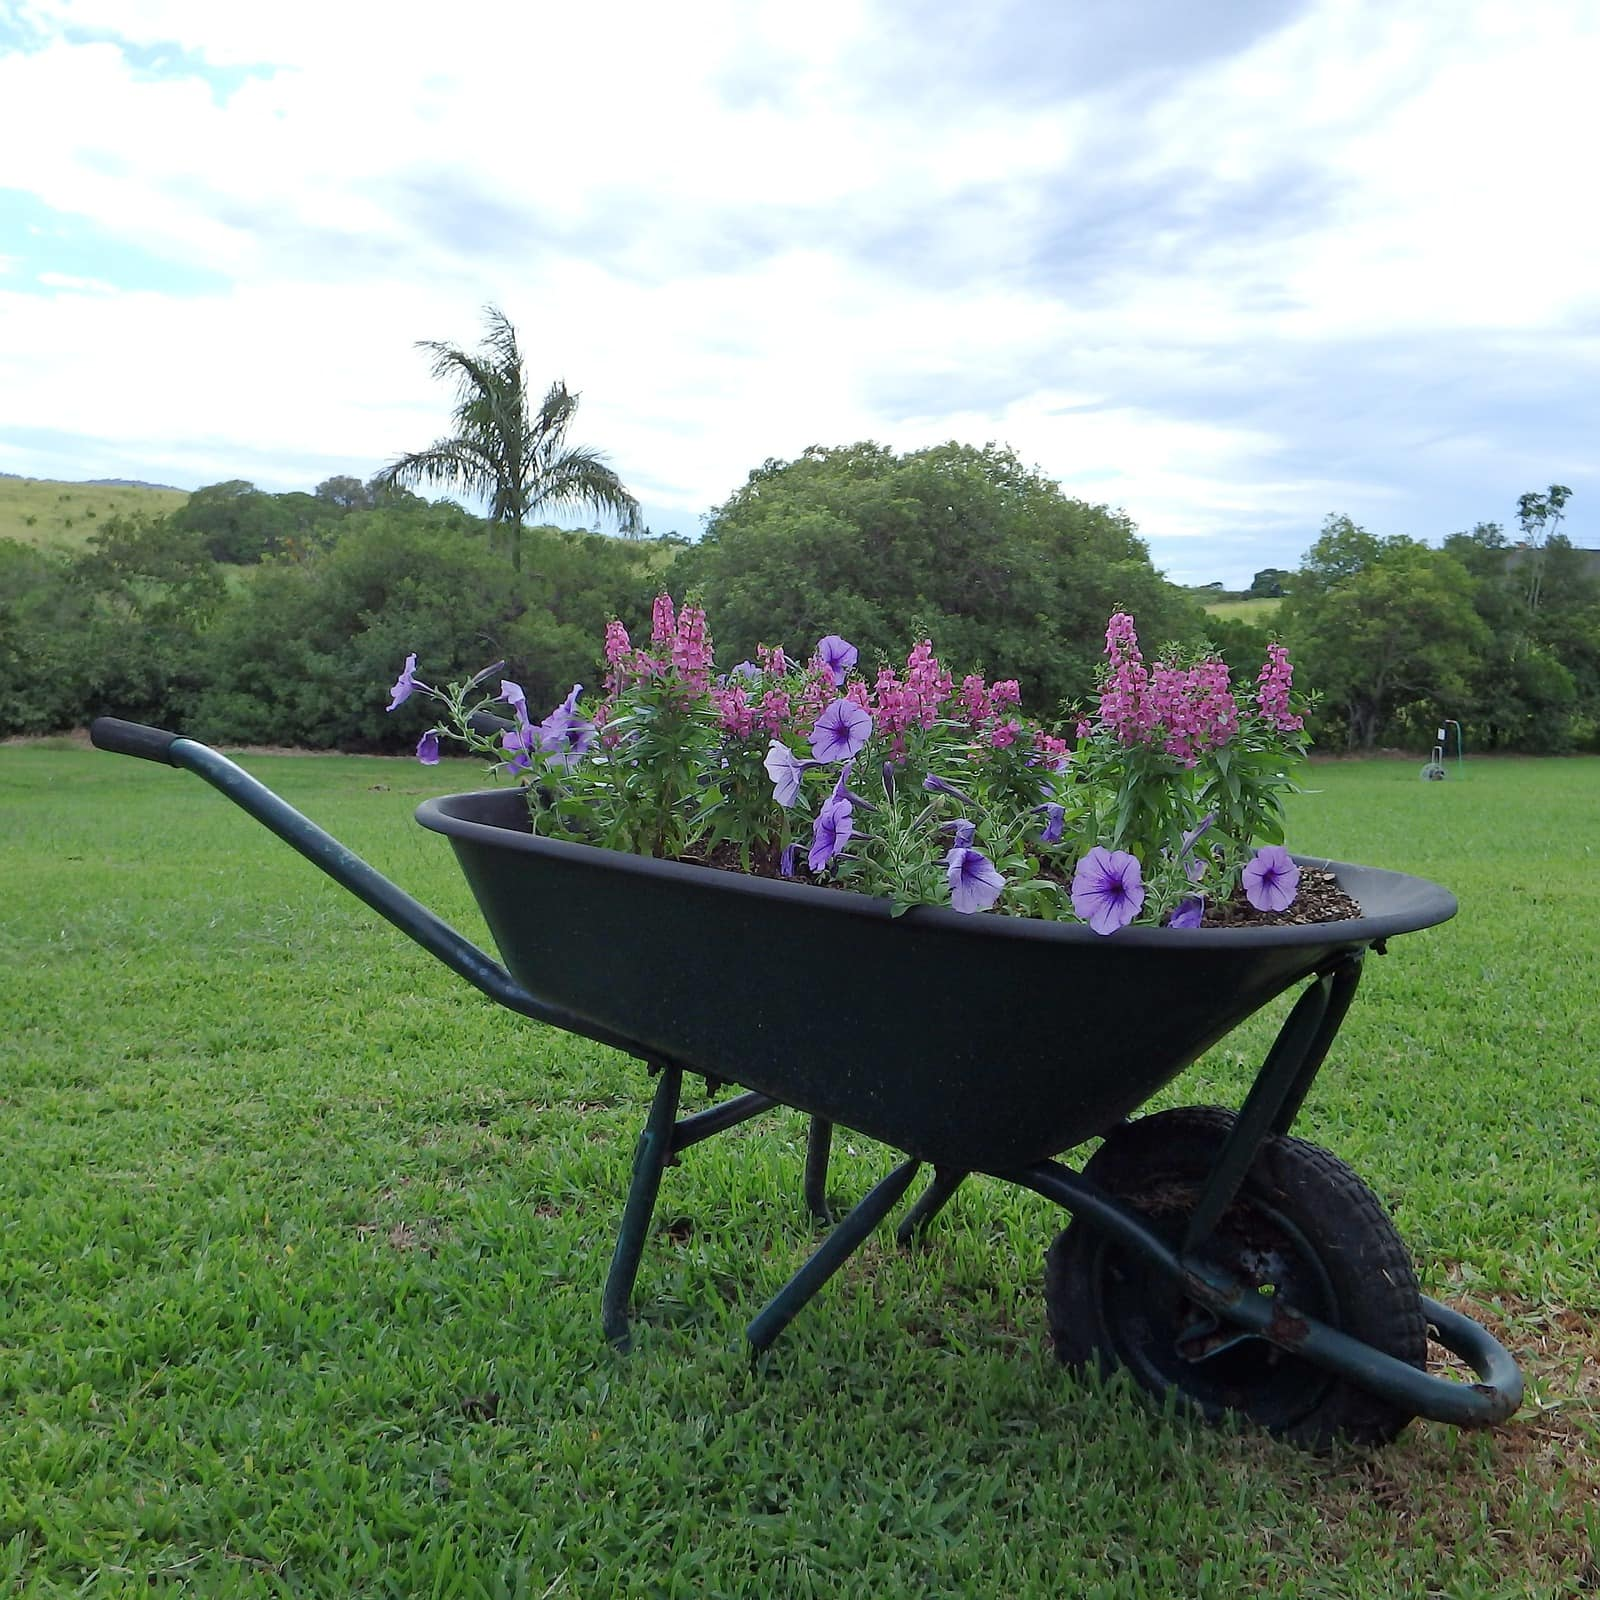 <strong>Install a Rustic Chic Wheelbarrow</strong>